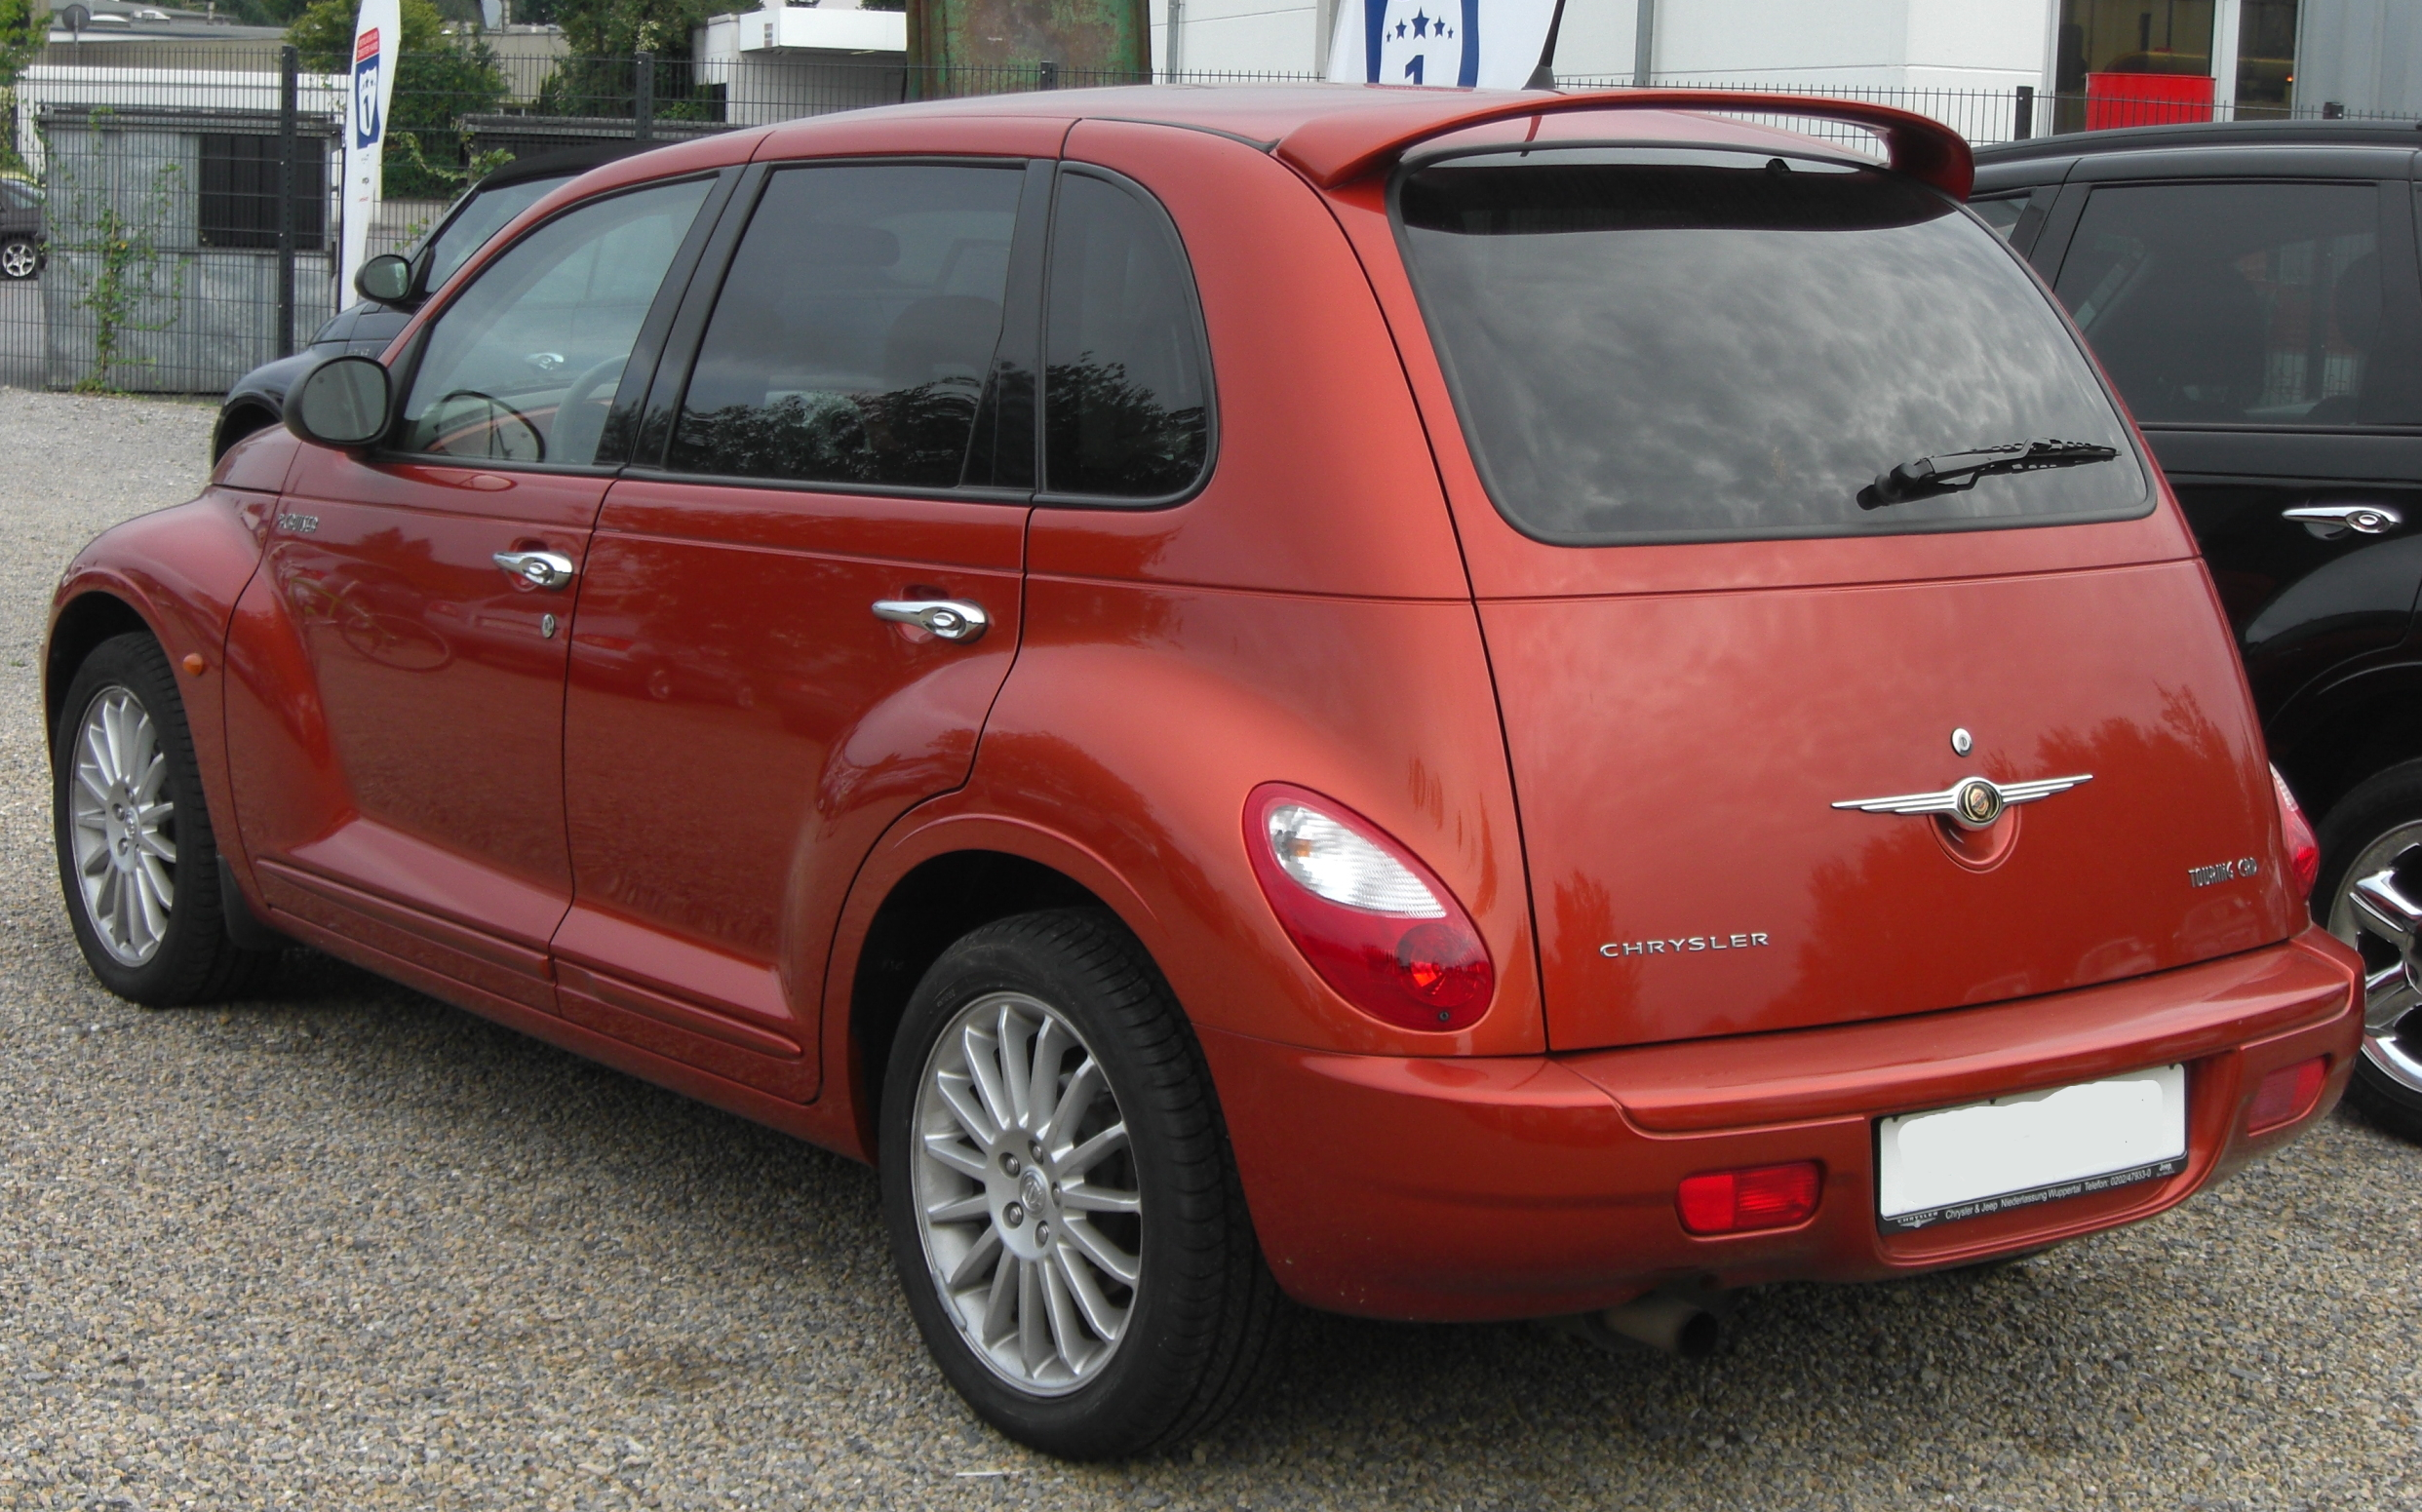 Chrysler pt cruiser touring 2.0